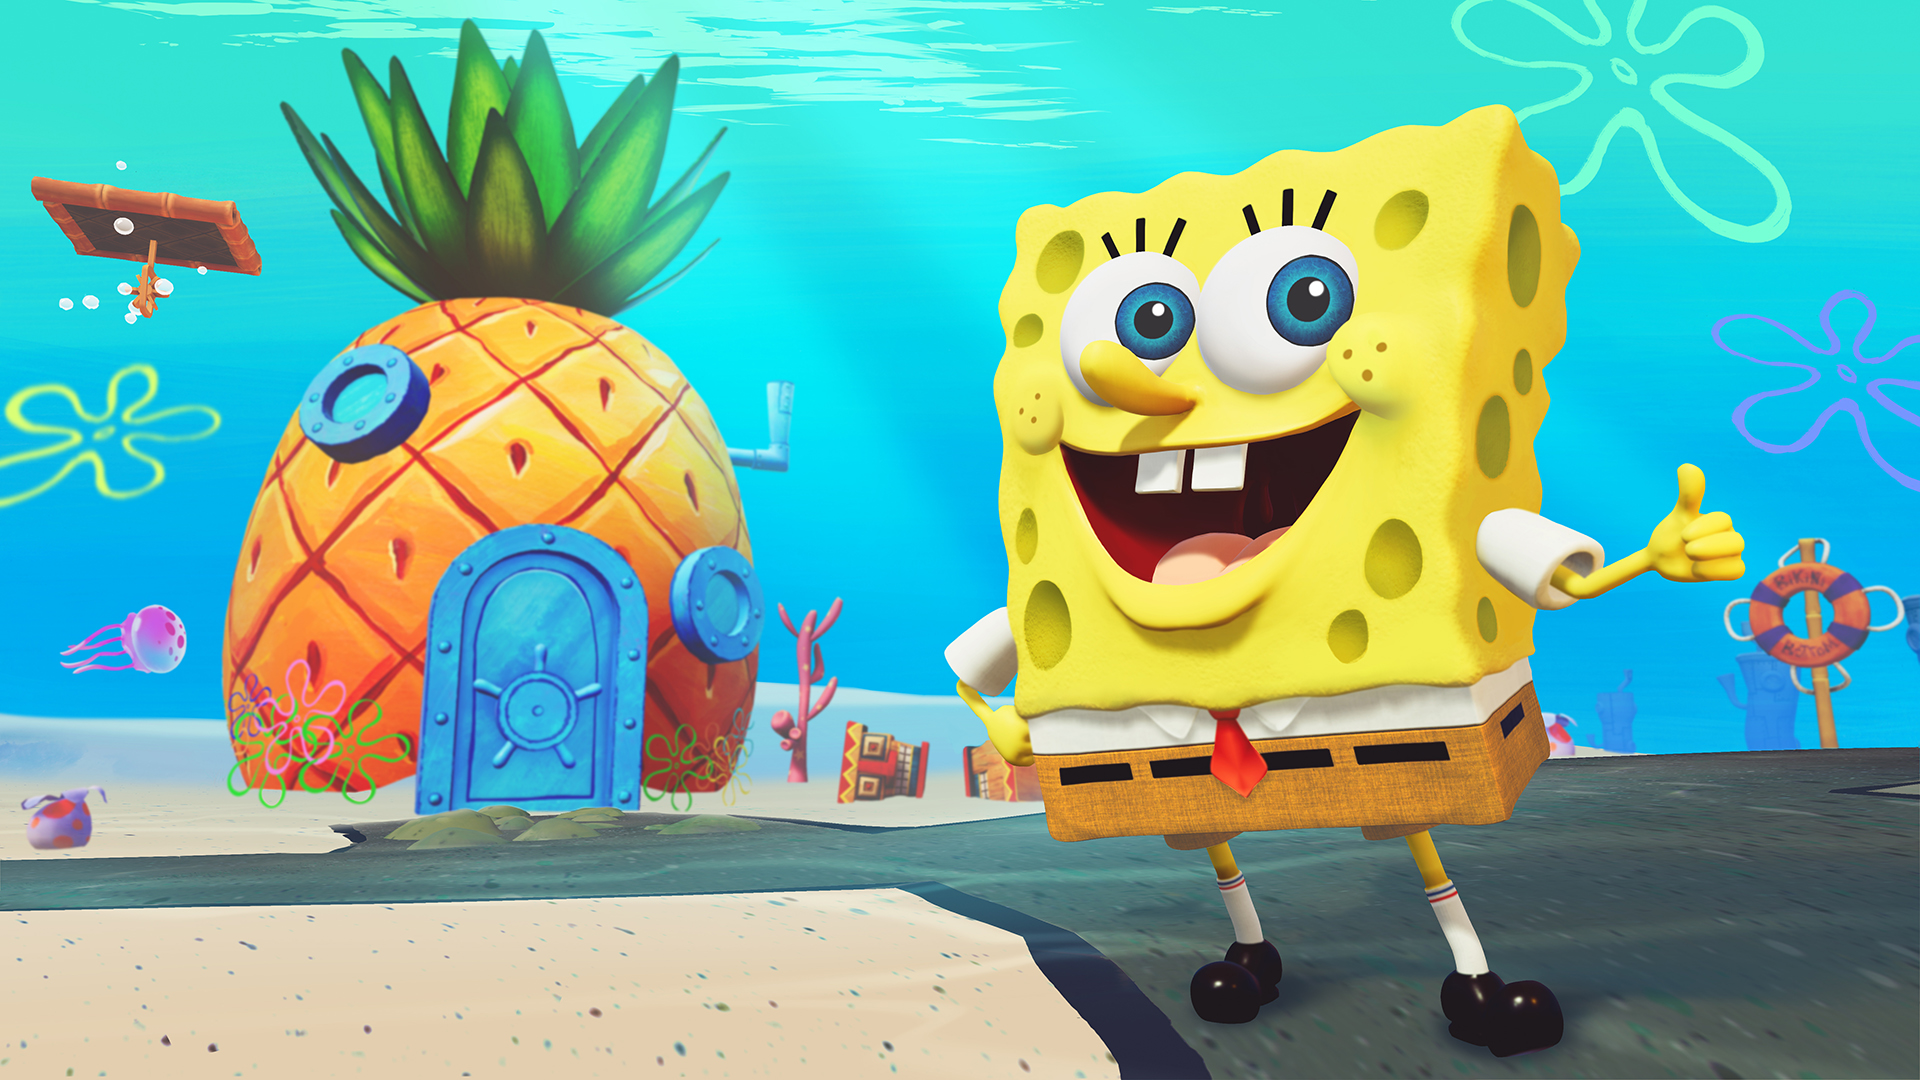 Bottom Spongebob On Rehydrated Steam SquarepantsBattle Bikini For bfvY6y7g